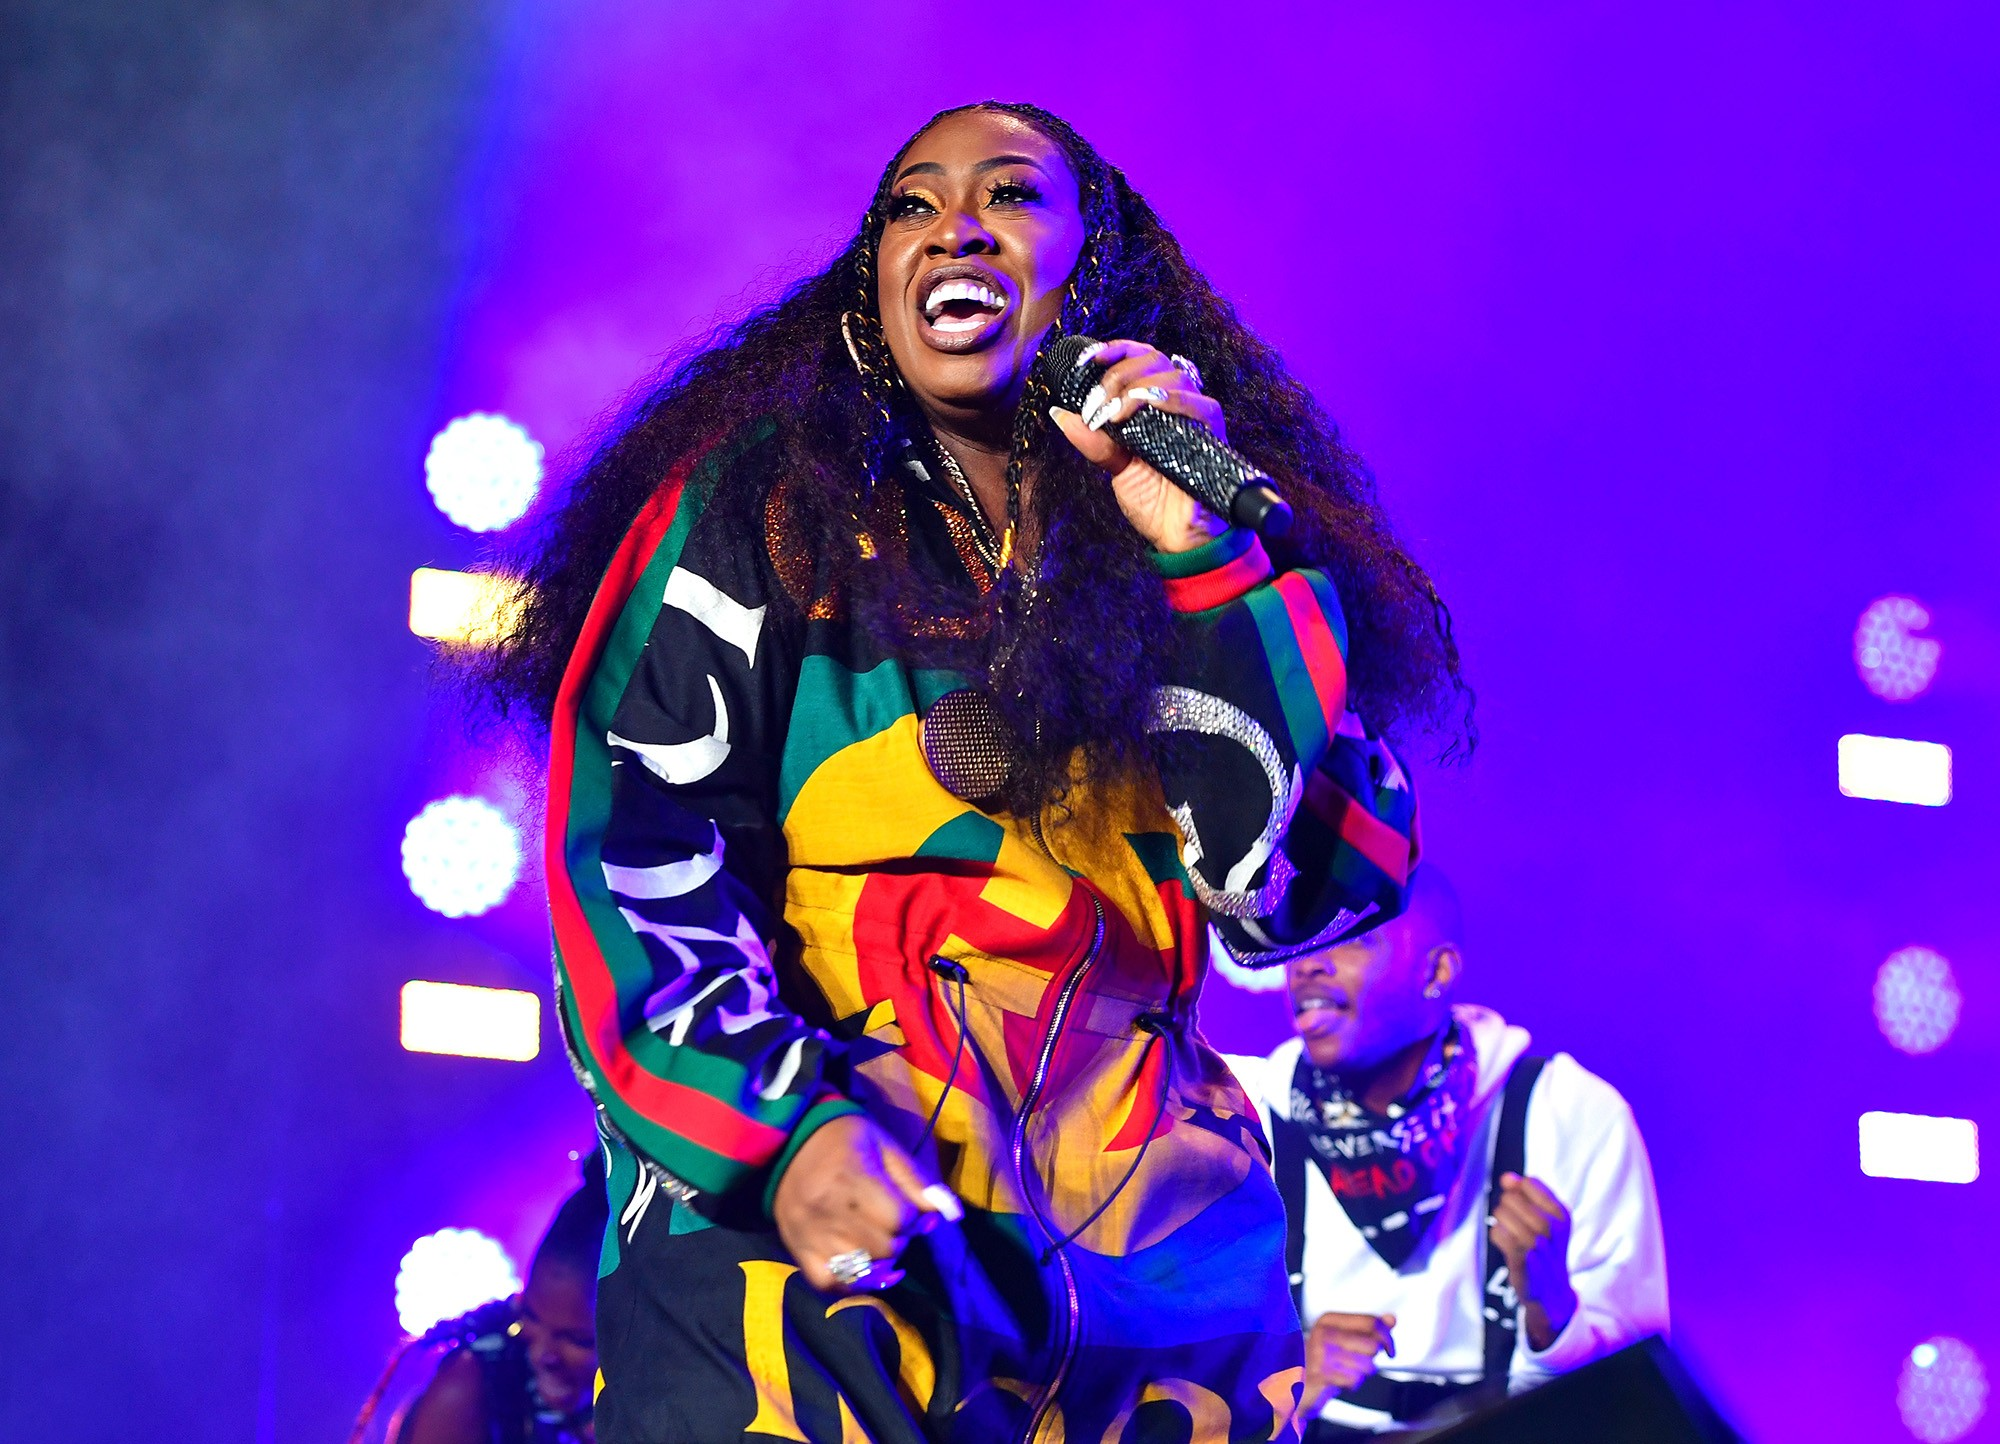 Missy Elliott becomes the first female rapper nominated for the songwriters